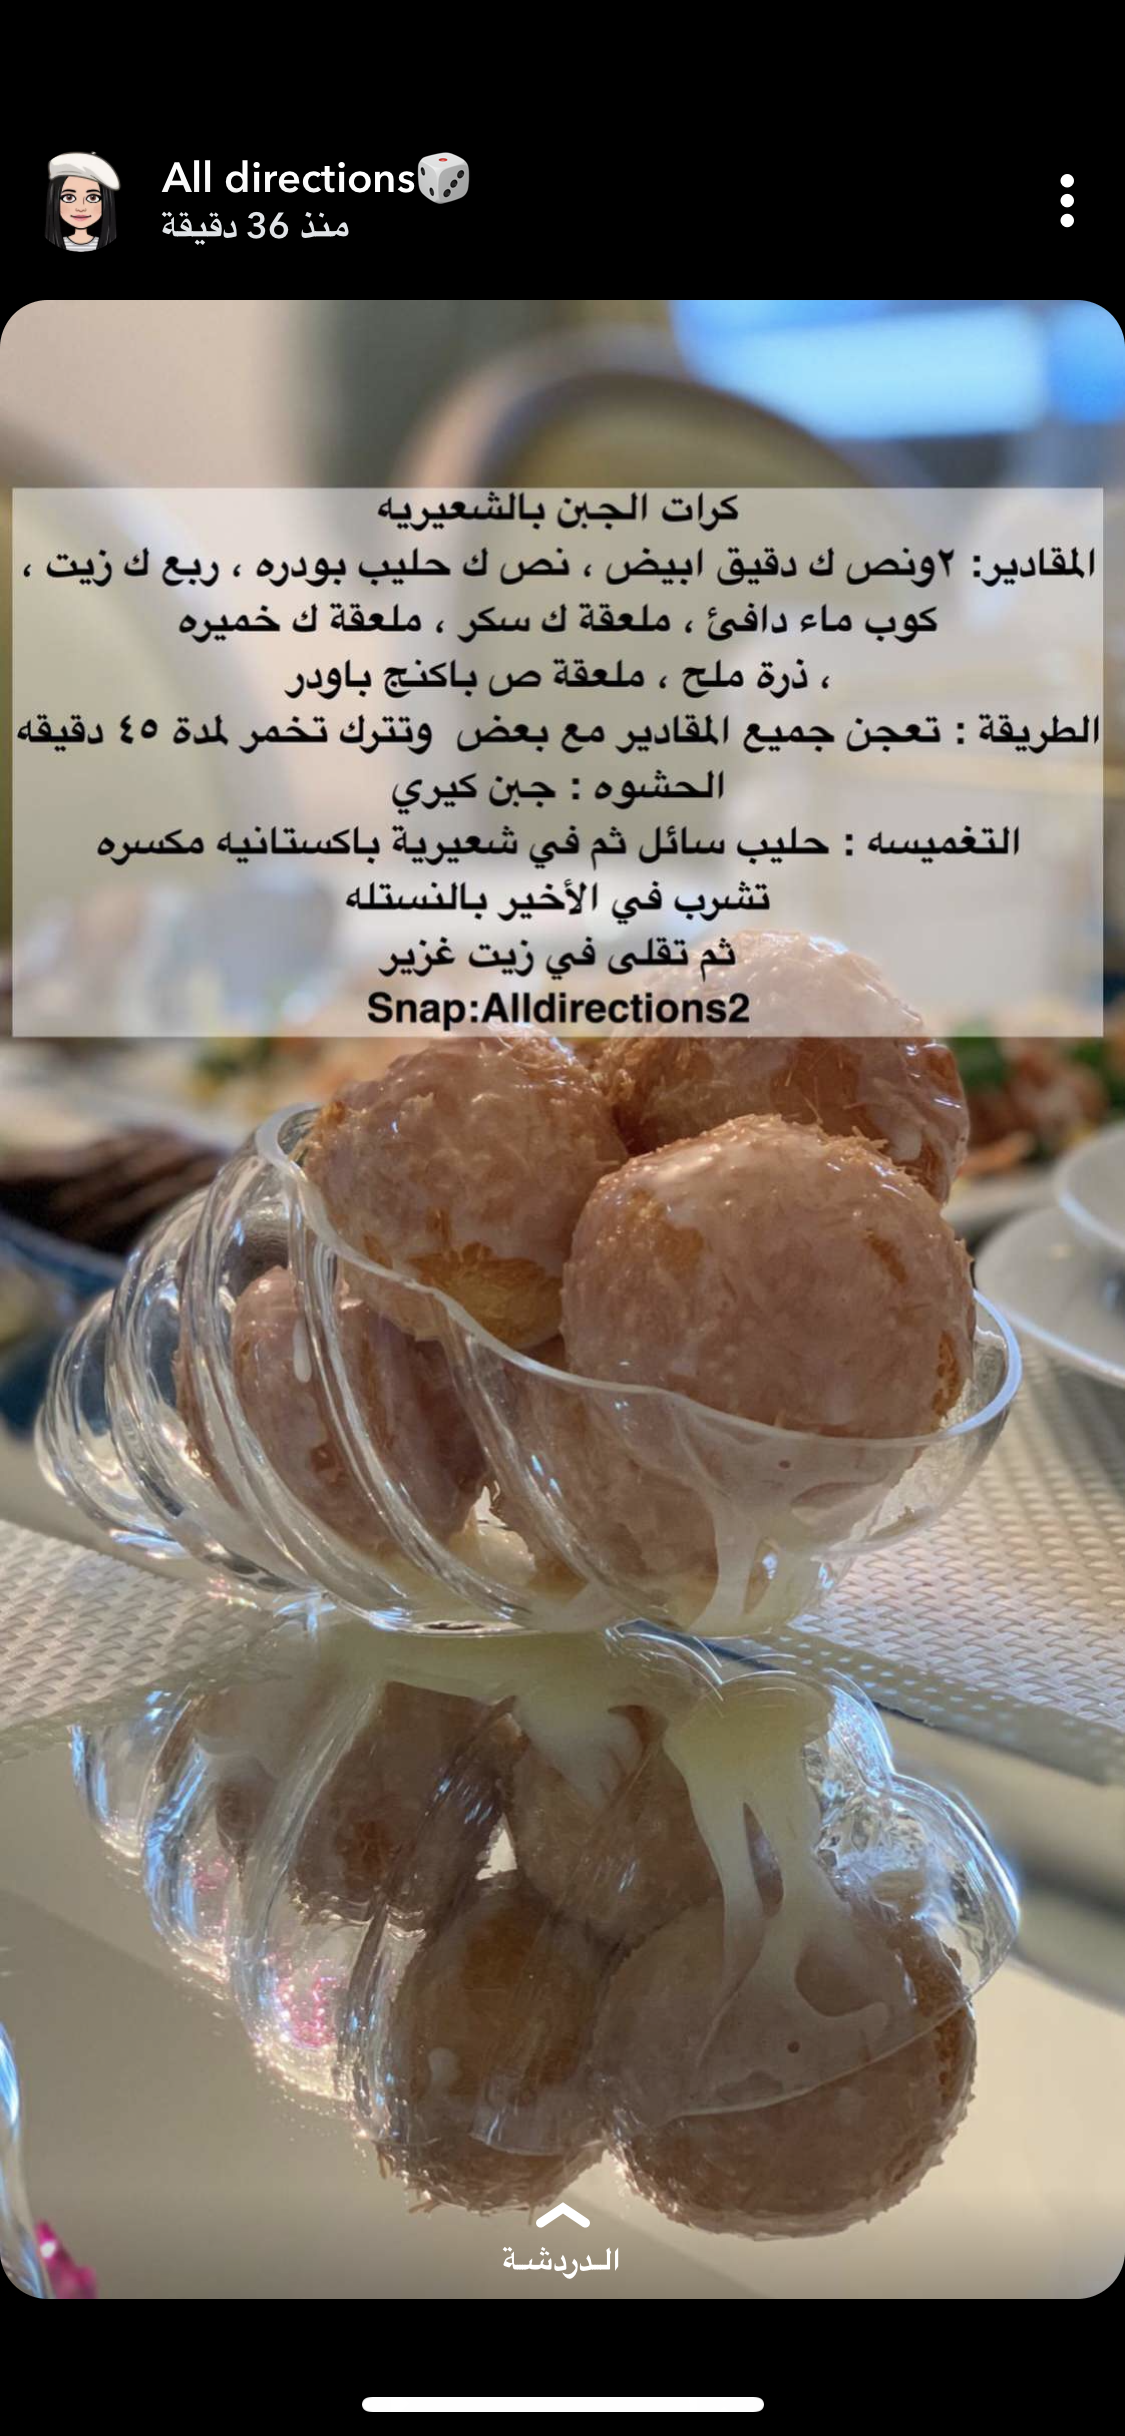 Pin By Faten Mohammed Joudah On اطباق سهلة وسريعة للمناسبات Food And Drink Dessert Recipes Food